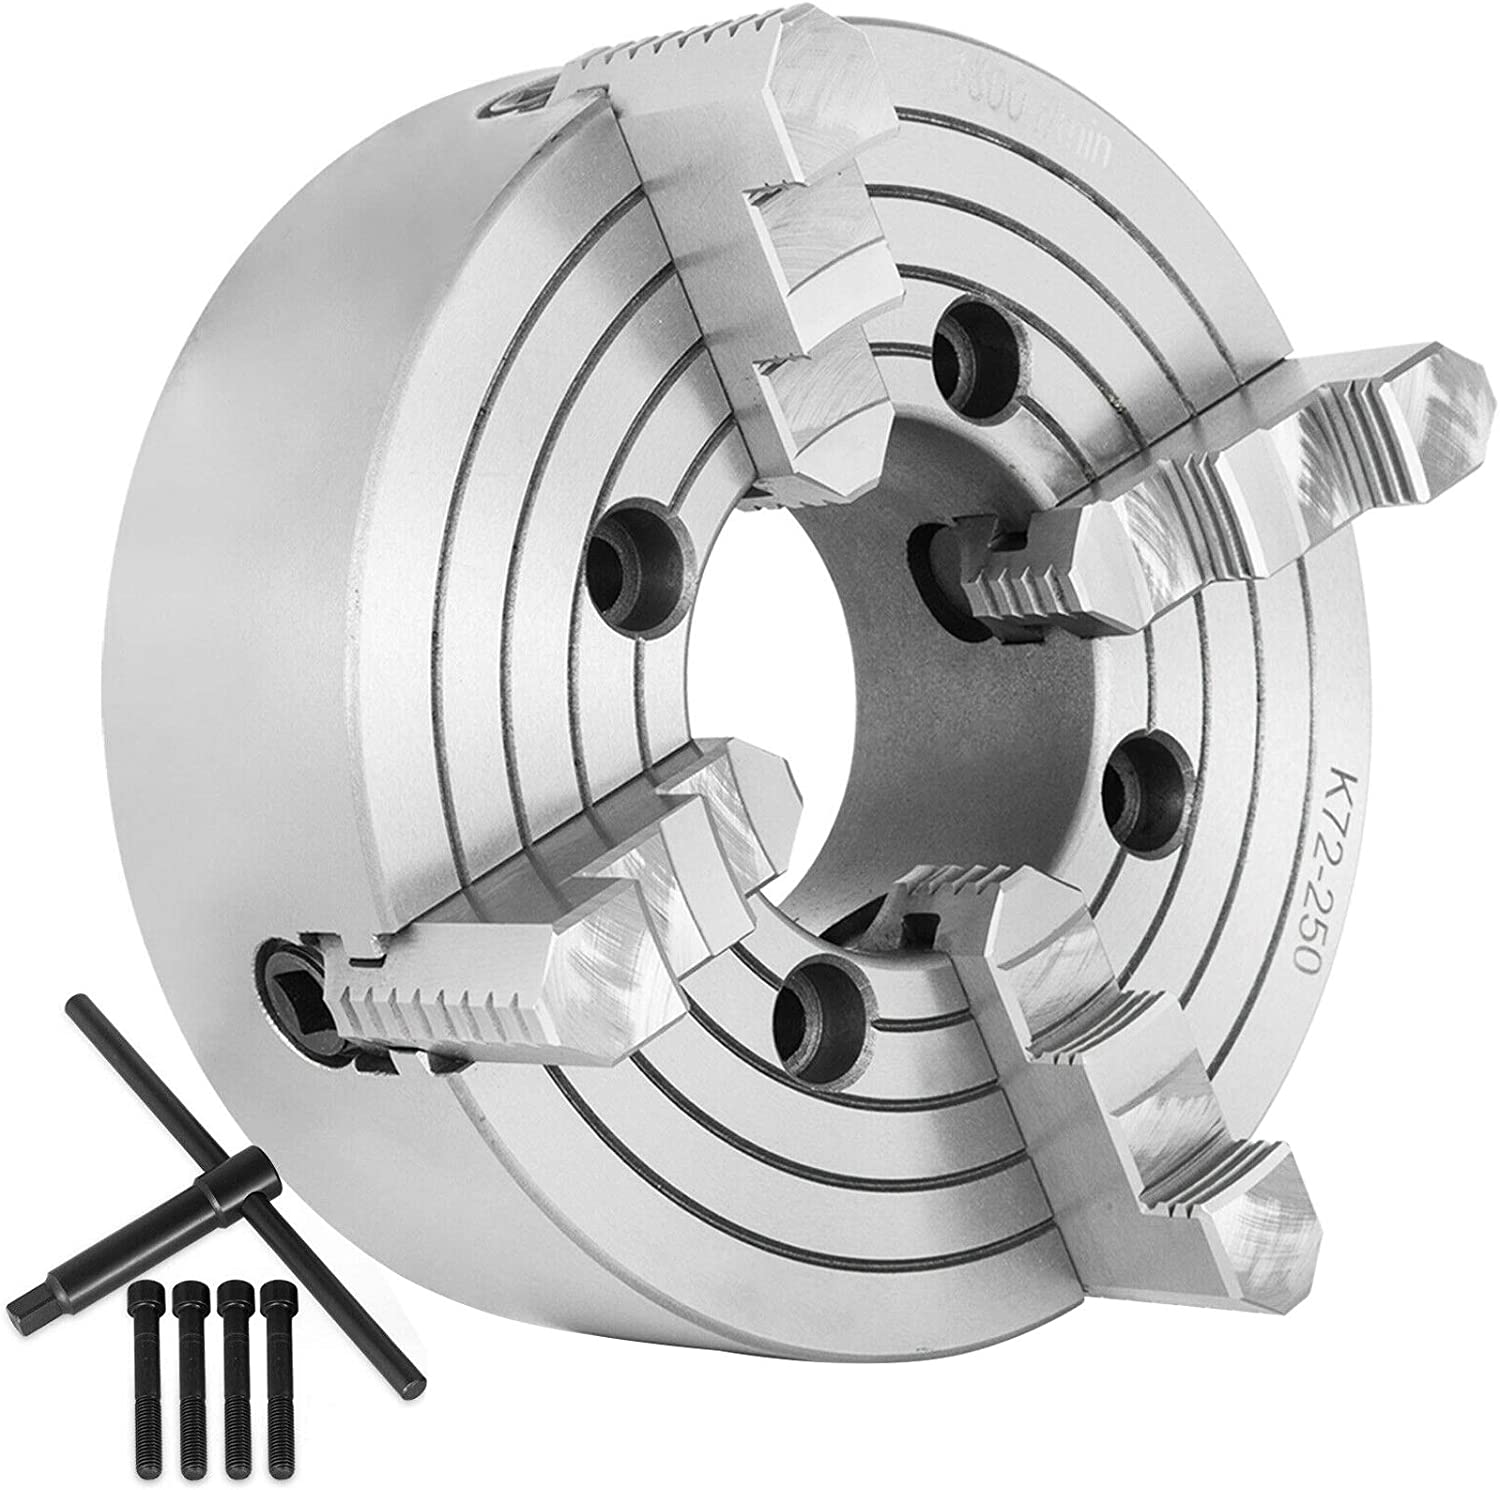 Mophorn K72-250 Lathe Chuck 4-Jaw 10 Inch Independen 55% OFF Don't miss the campaign